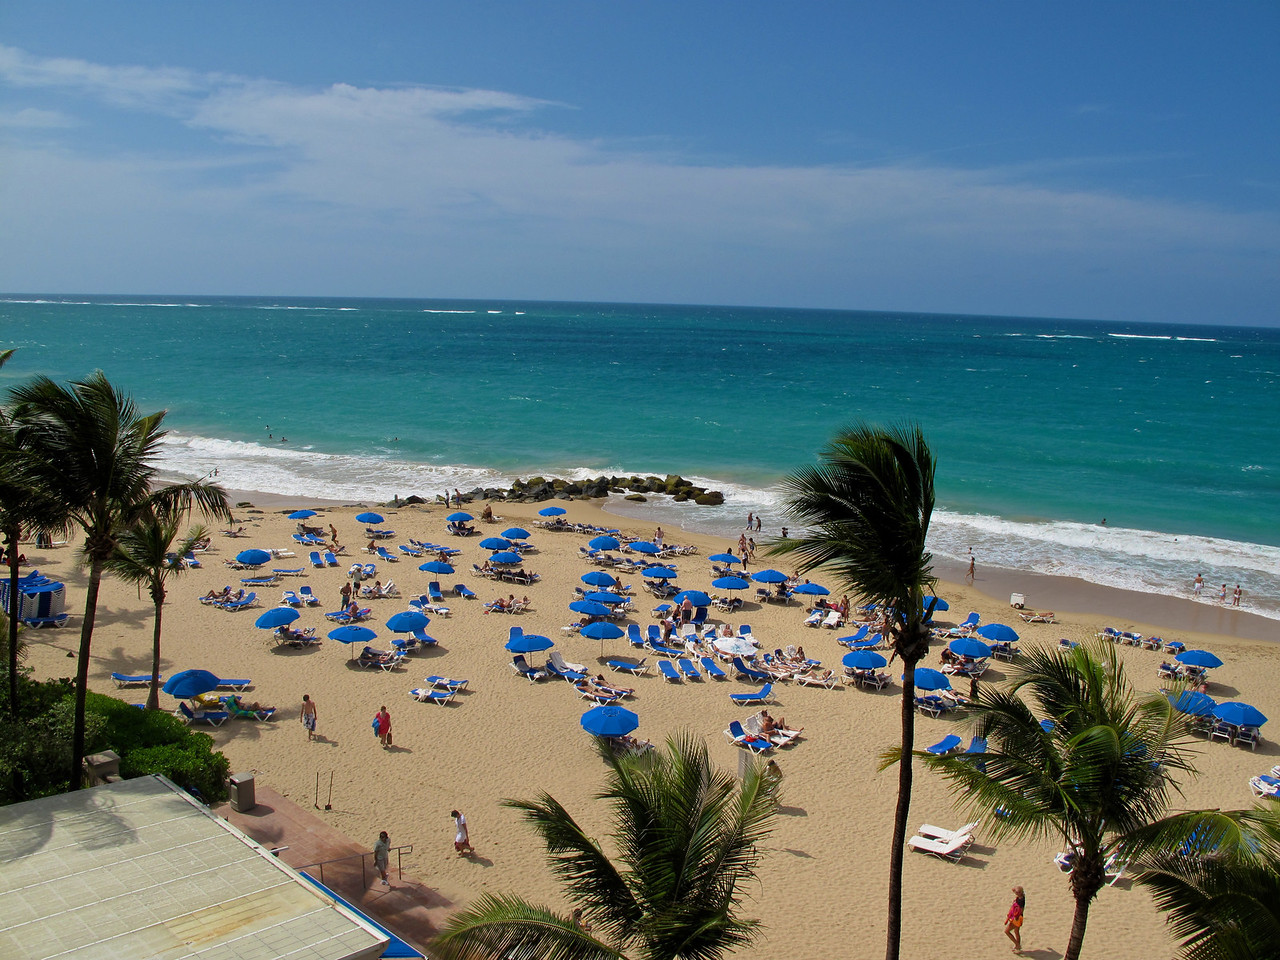 Condado Beach lies to the dast of Old San Juan and is a wealthy tourist-oriented neighborhood which occupies land that used to be owned by entrepreneur Pablo Ubarri Capetillo, a Spanish railroad developer and Count of San José de Santurce under the Spanish colonial period.